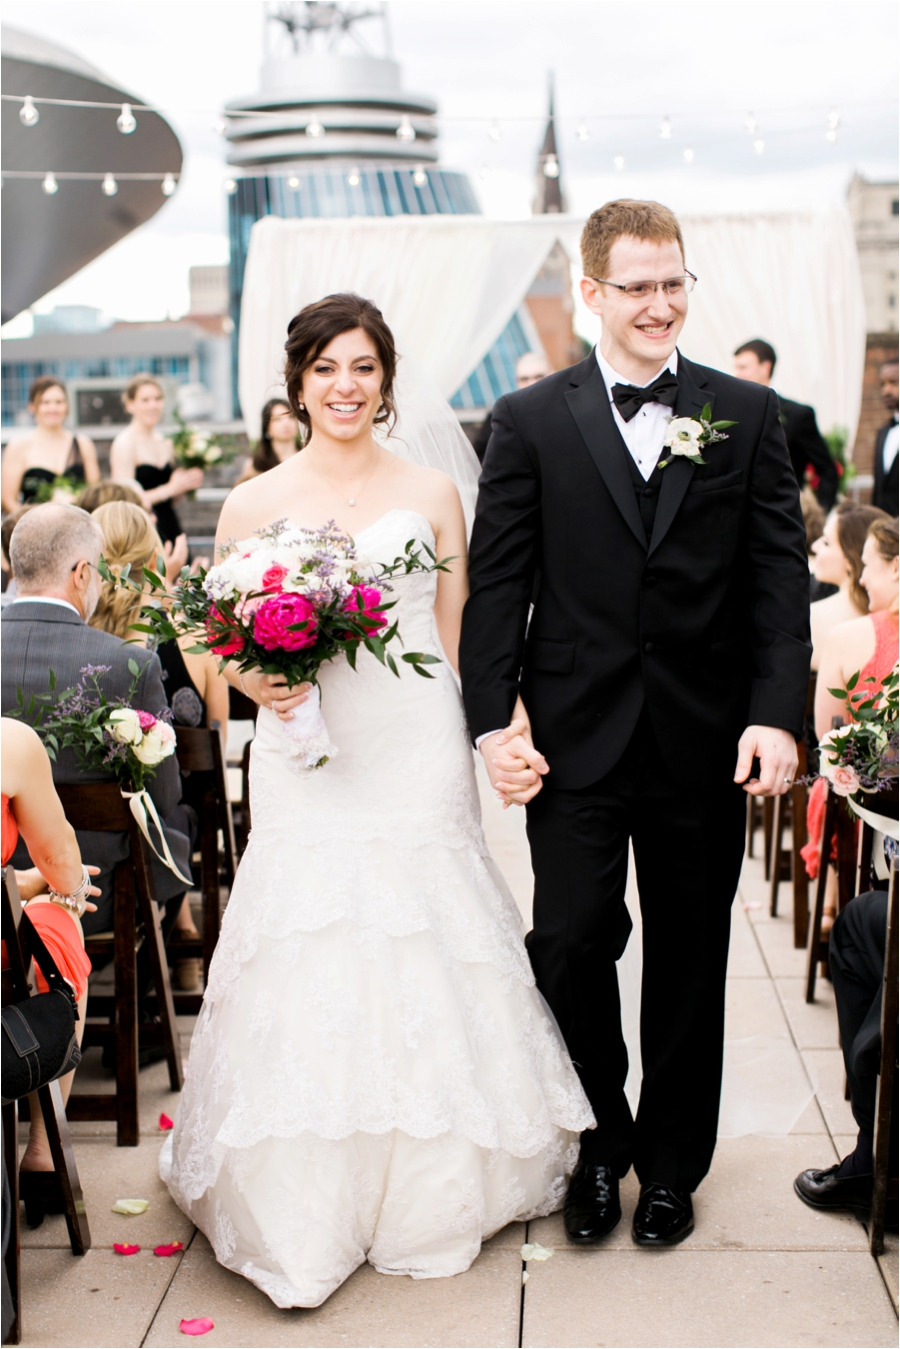 nashville rooftop wedding at aerial by charlottesville photographer, Amy Nicole Photography_0049